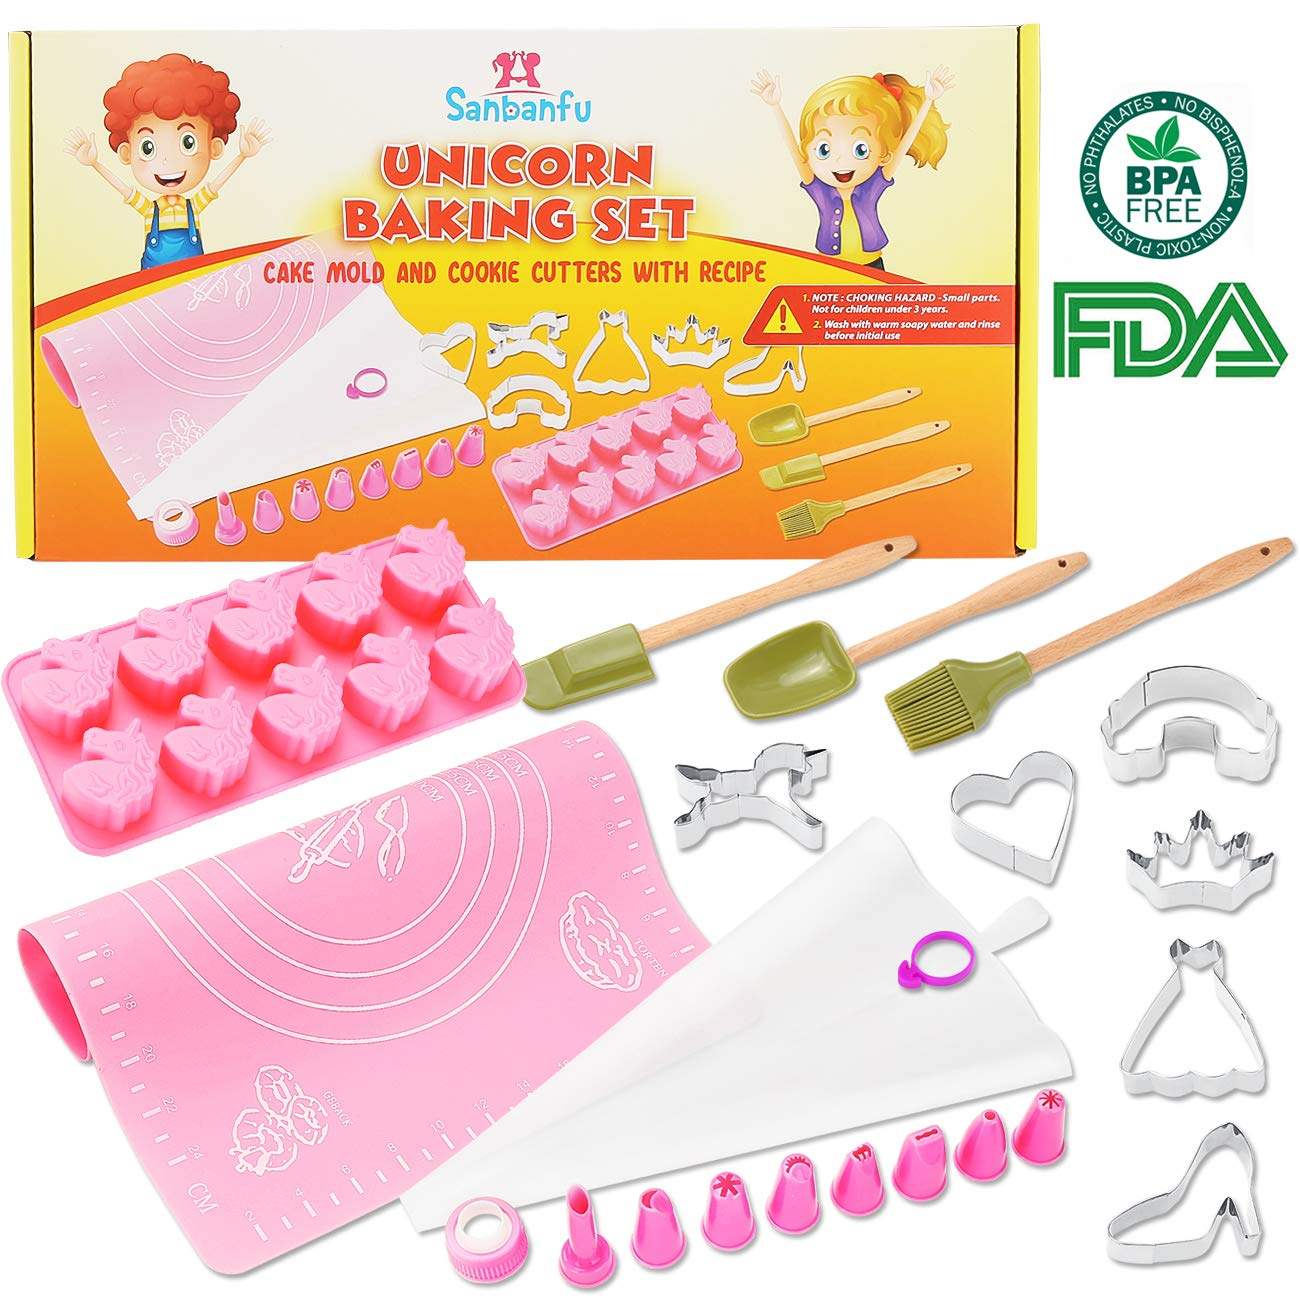 Fun Kids Unicorn Baking Set with Cupcake Mold, Cookie Cutters, 8 Frosting Decorating Tips, Kid Size Spatula, Brush, Spoon. Frosting Bag, Silicone Mat with Measurements, Delicious Recipes. FDA Approved sanbanfu